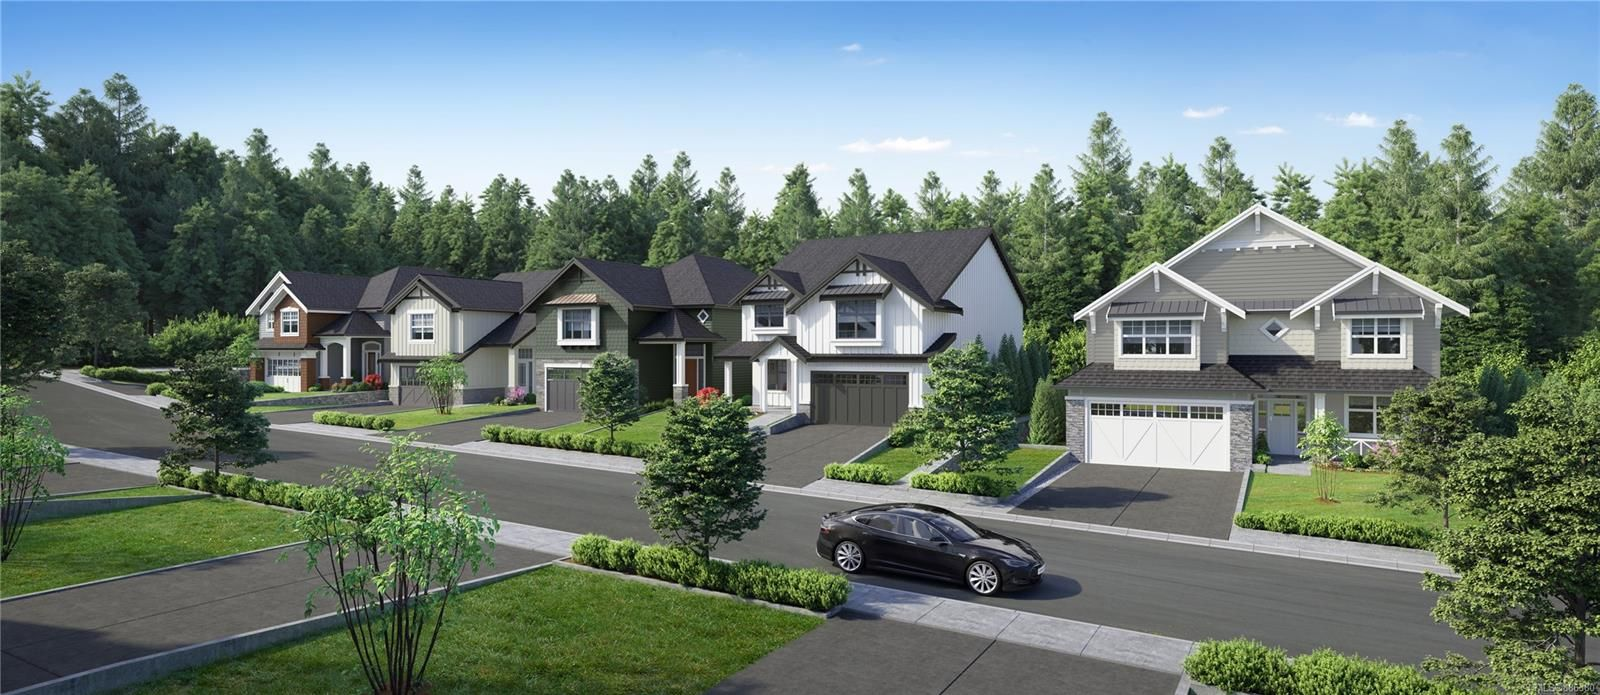 Main Photo: 3602 Delblush Lane in : La Olympic View Land for sale (Langford)  : MLS®# 886380